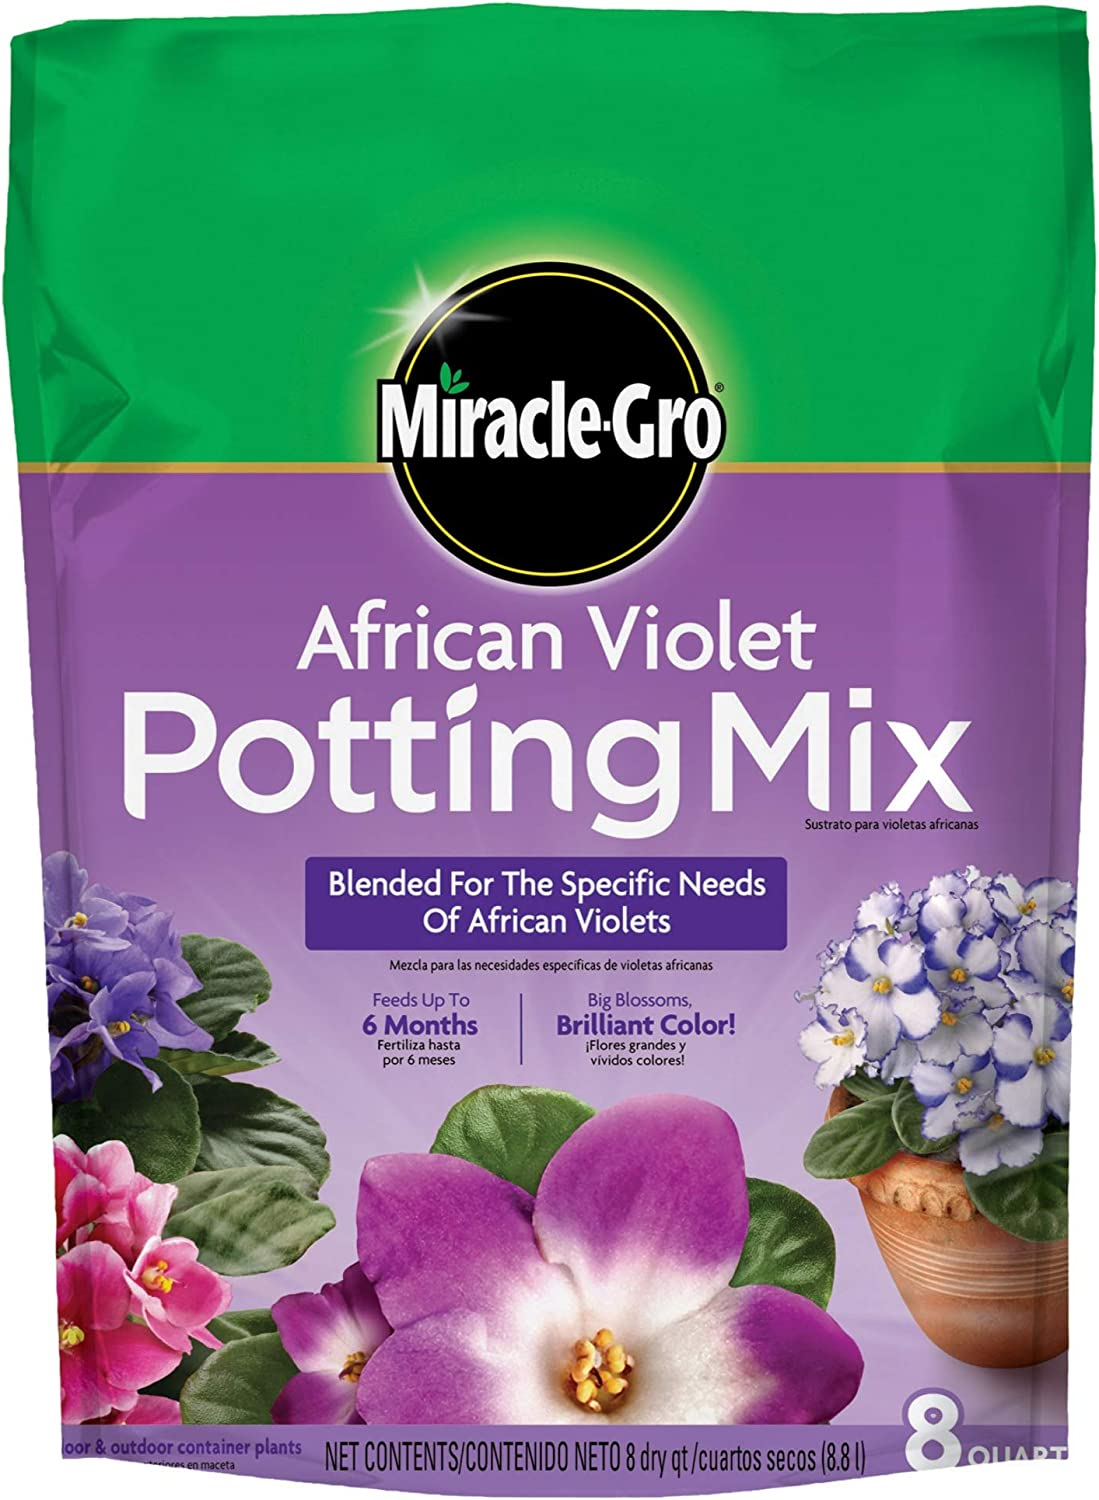 Miracle Gro 72678430 8 Qt African Violet Potting Mix 0.21-0.11-0.16